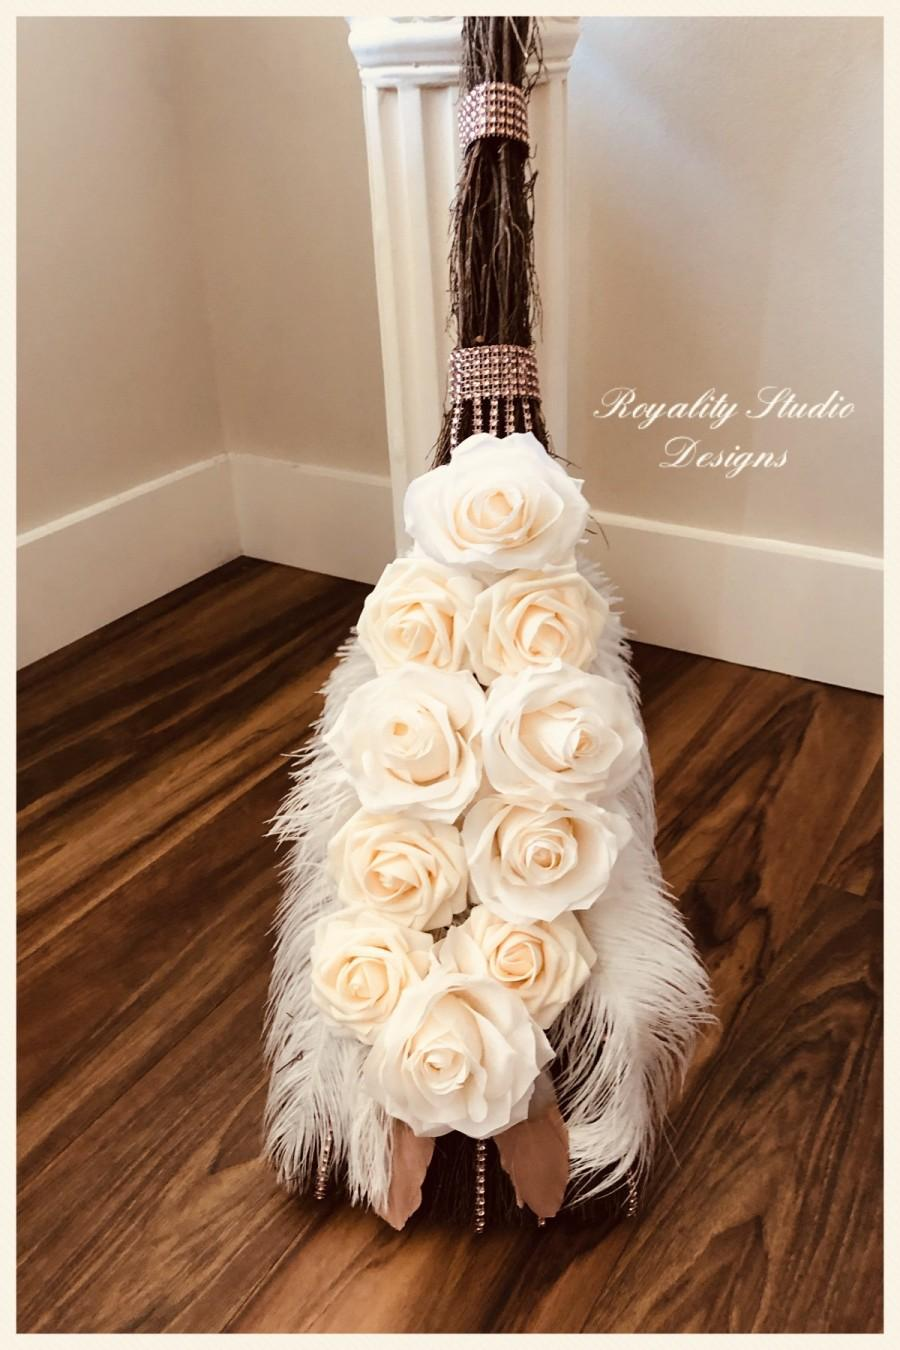 Wedding - Wedding Broom- Wedding Tradition of Jumping the Broom